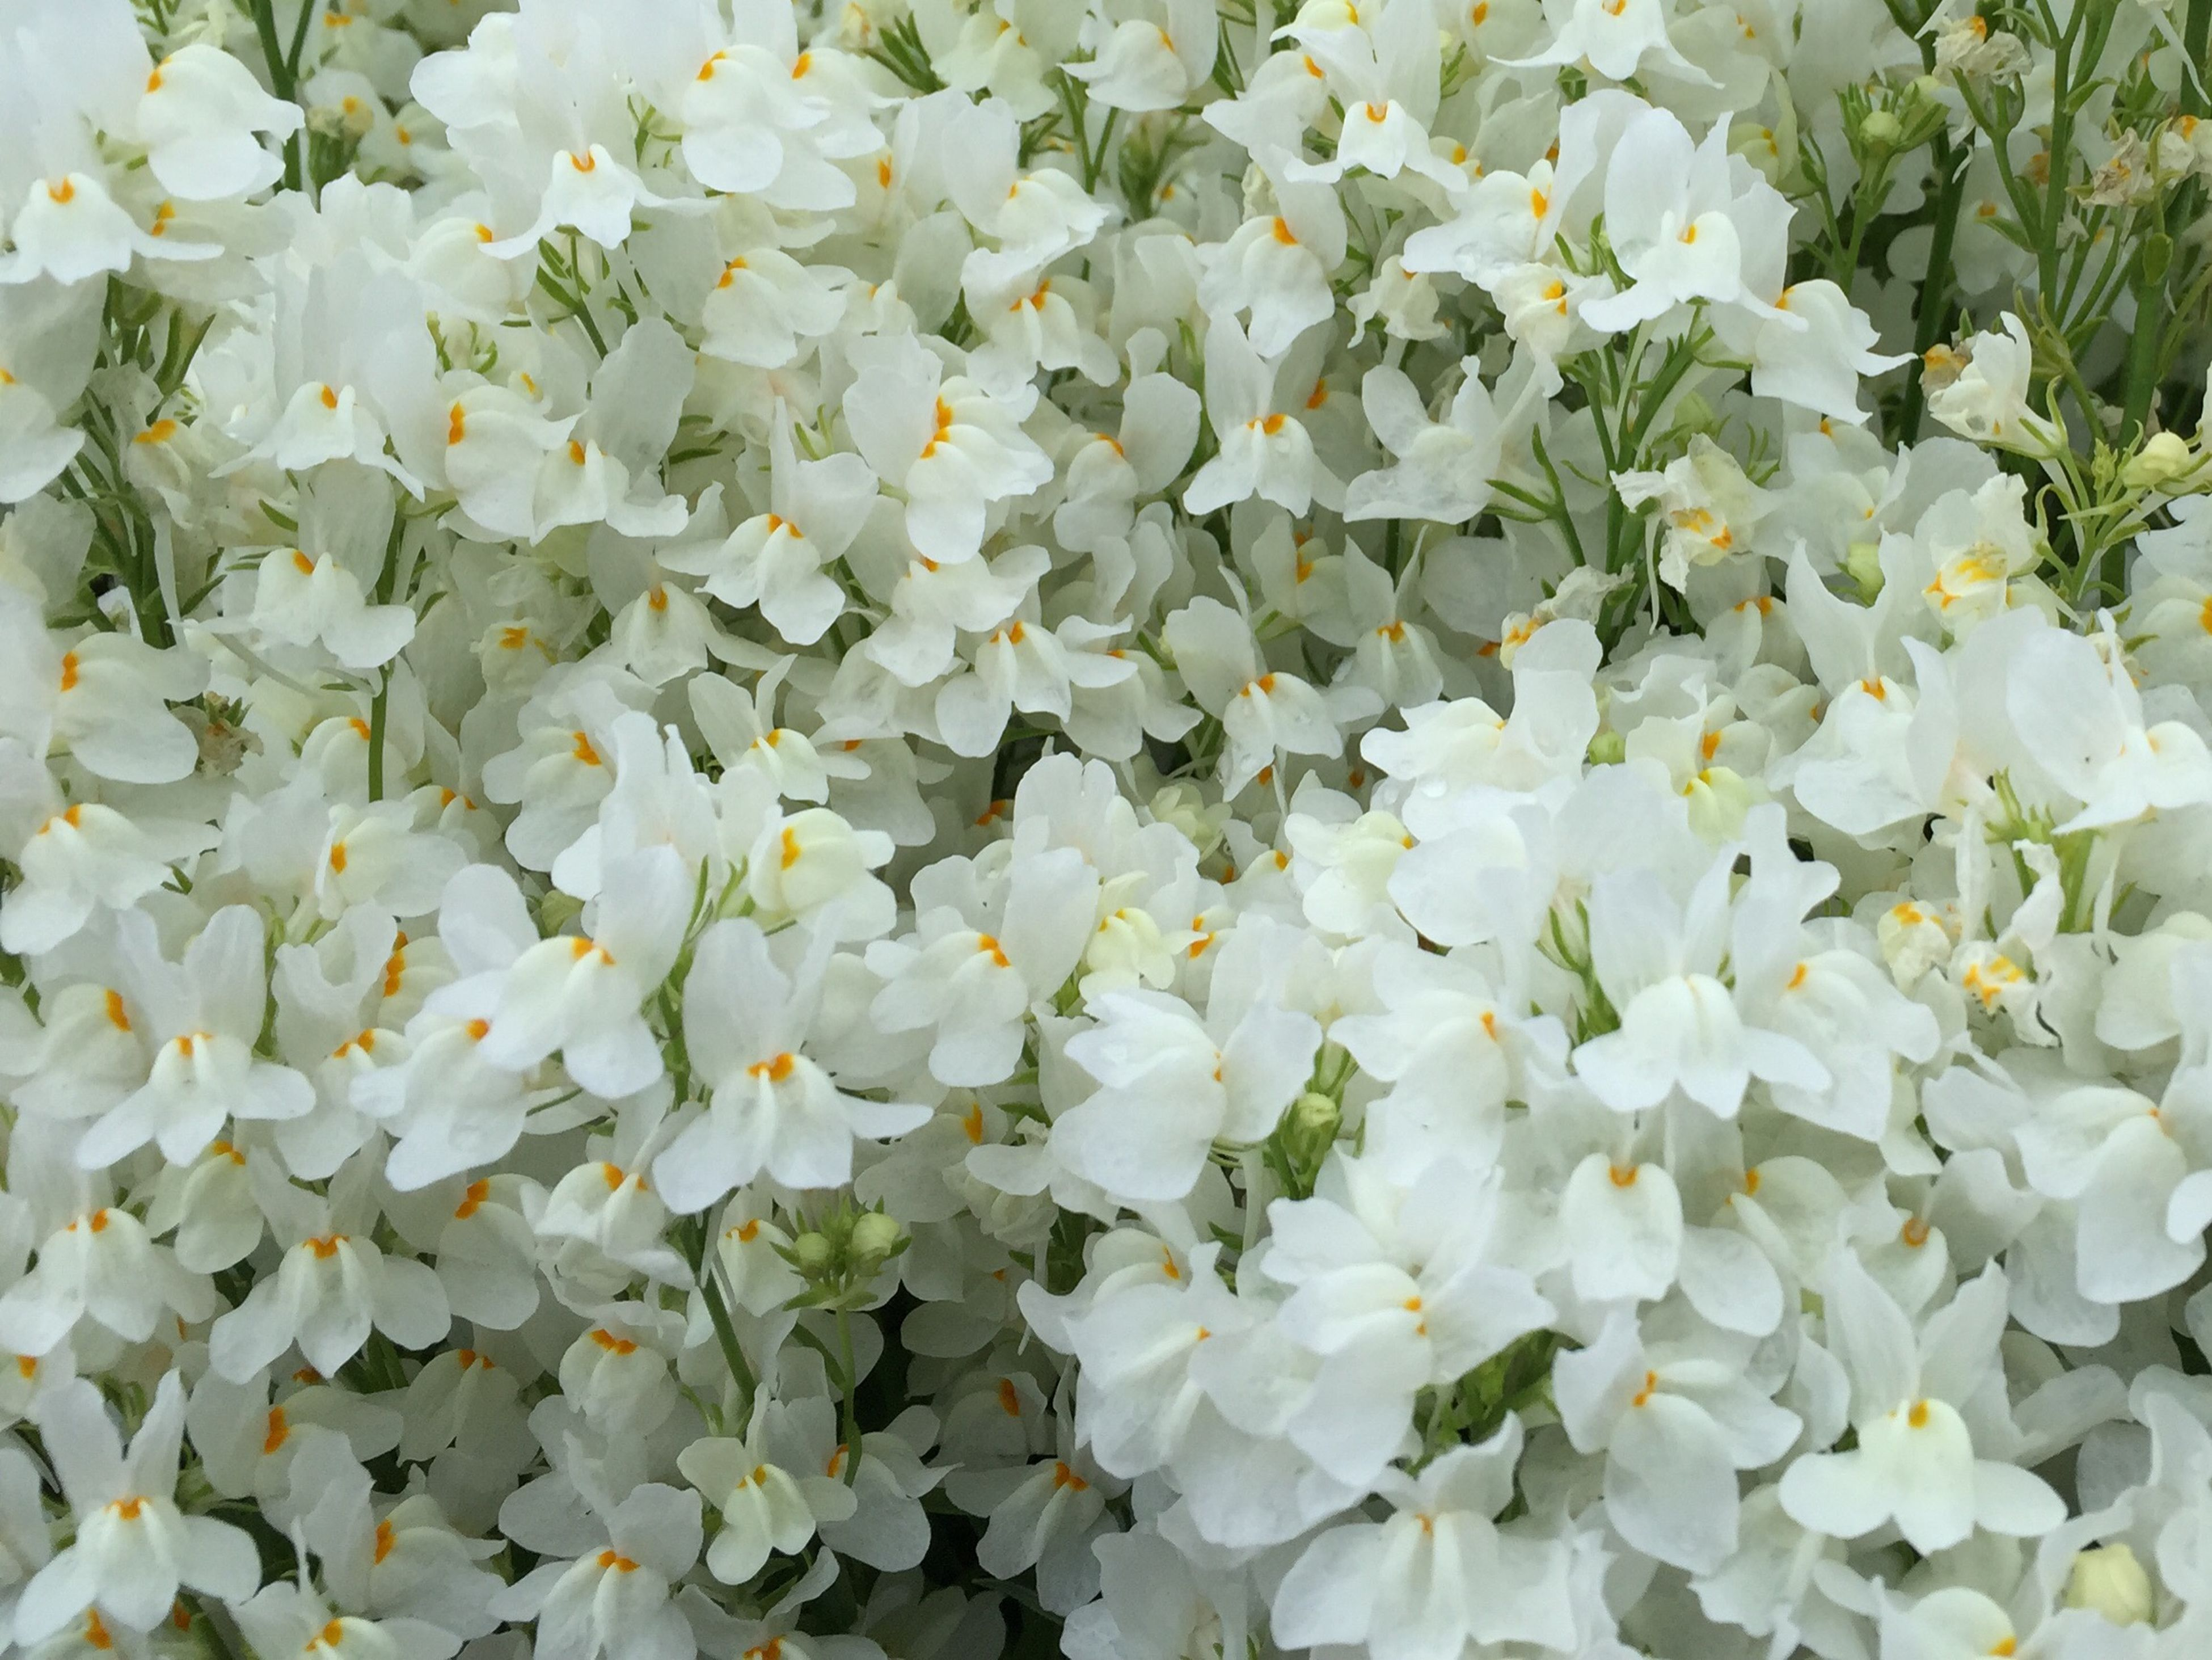 flower, white color, freshness, growth, fragility, petal, beauty in nature, nature, full frame, flower head, high angle view, blooming, plant, backgrounds, white, blossom, in bloom, abundance, outdoors, day